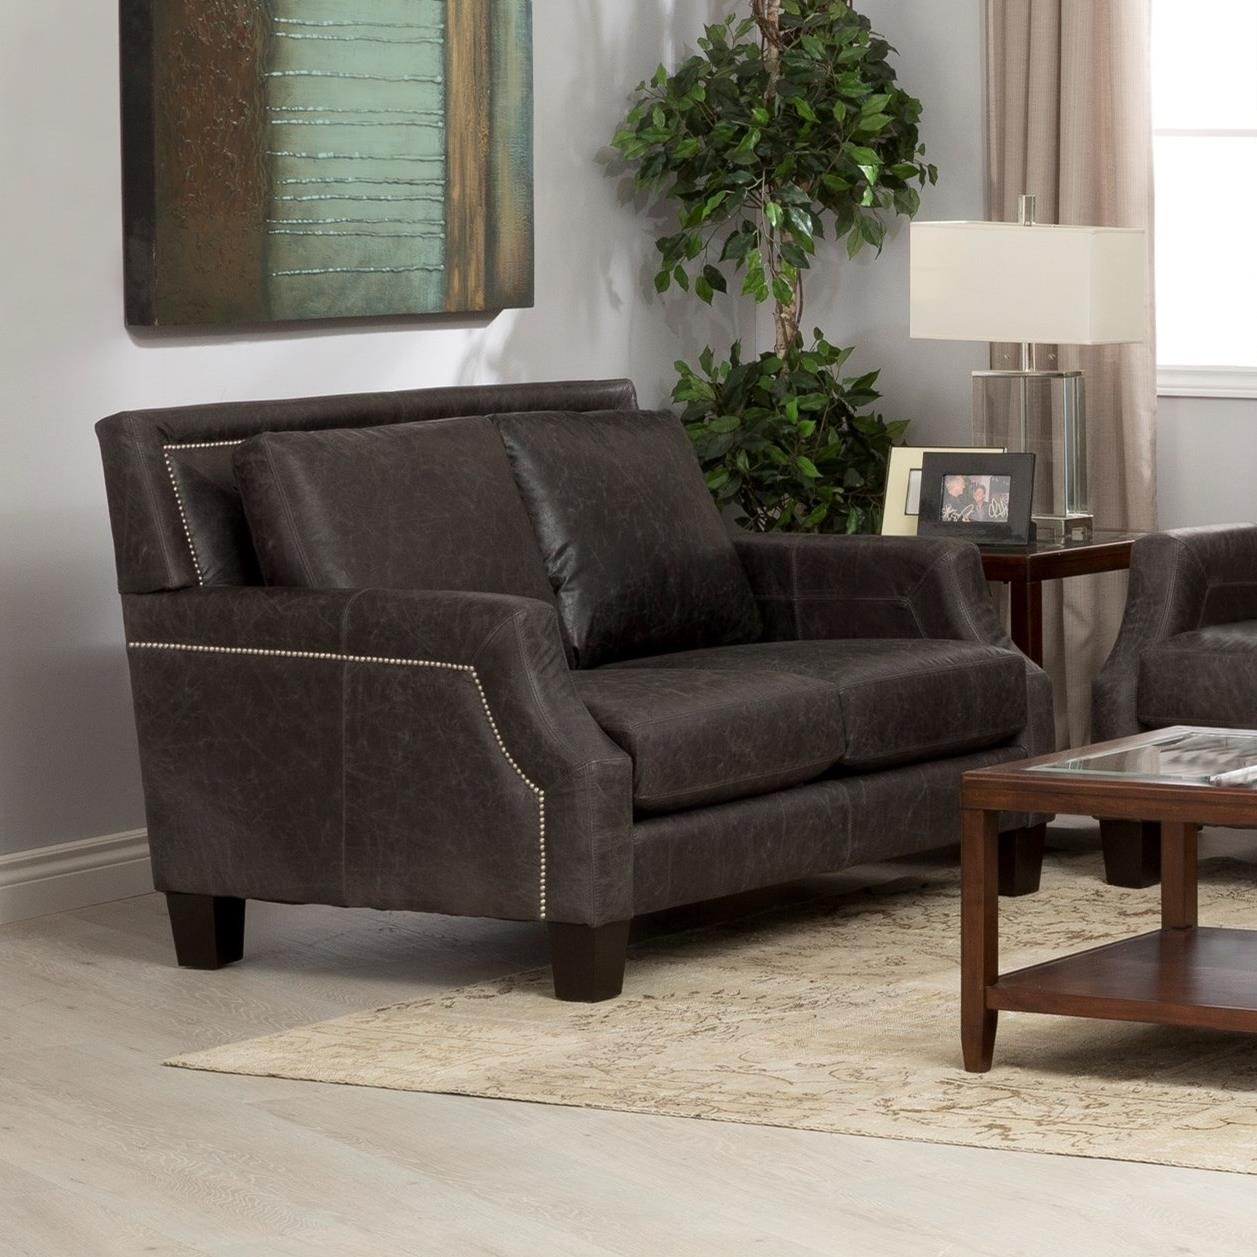 2135  Loveseat by Decor-Rest at Rooms for Less